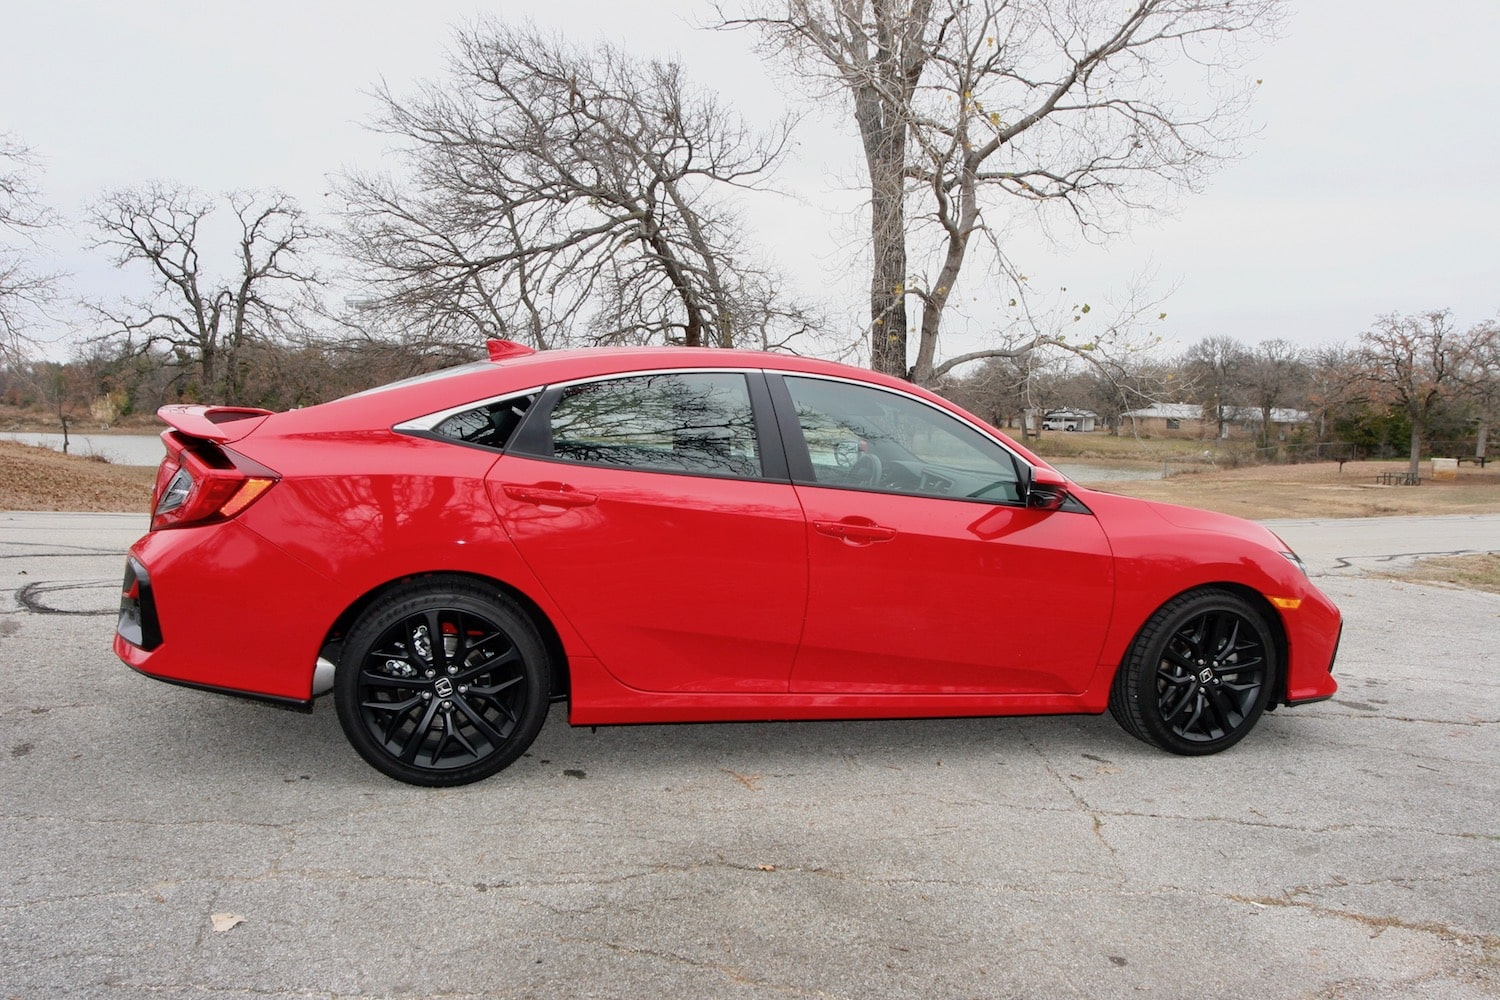 2020 Honda Civic Si Hpt Sedan Review Carprousa